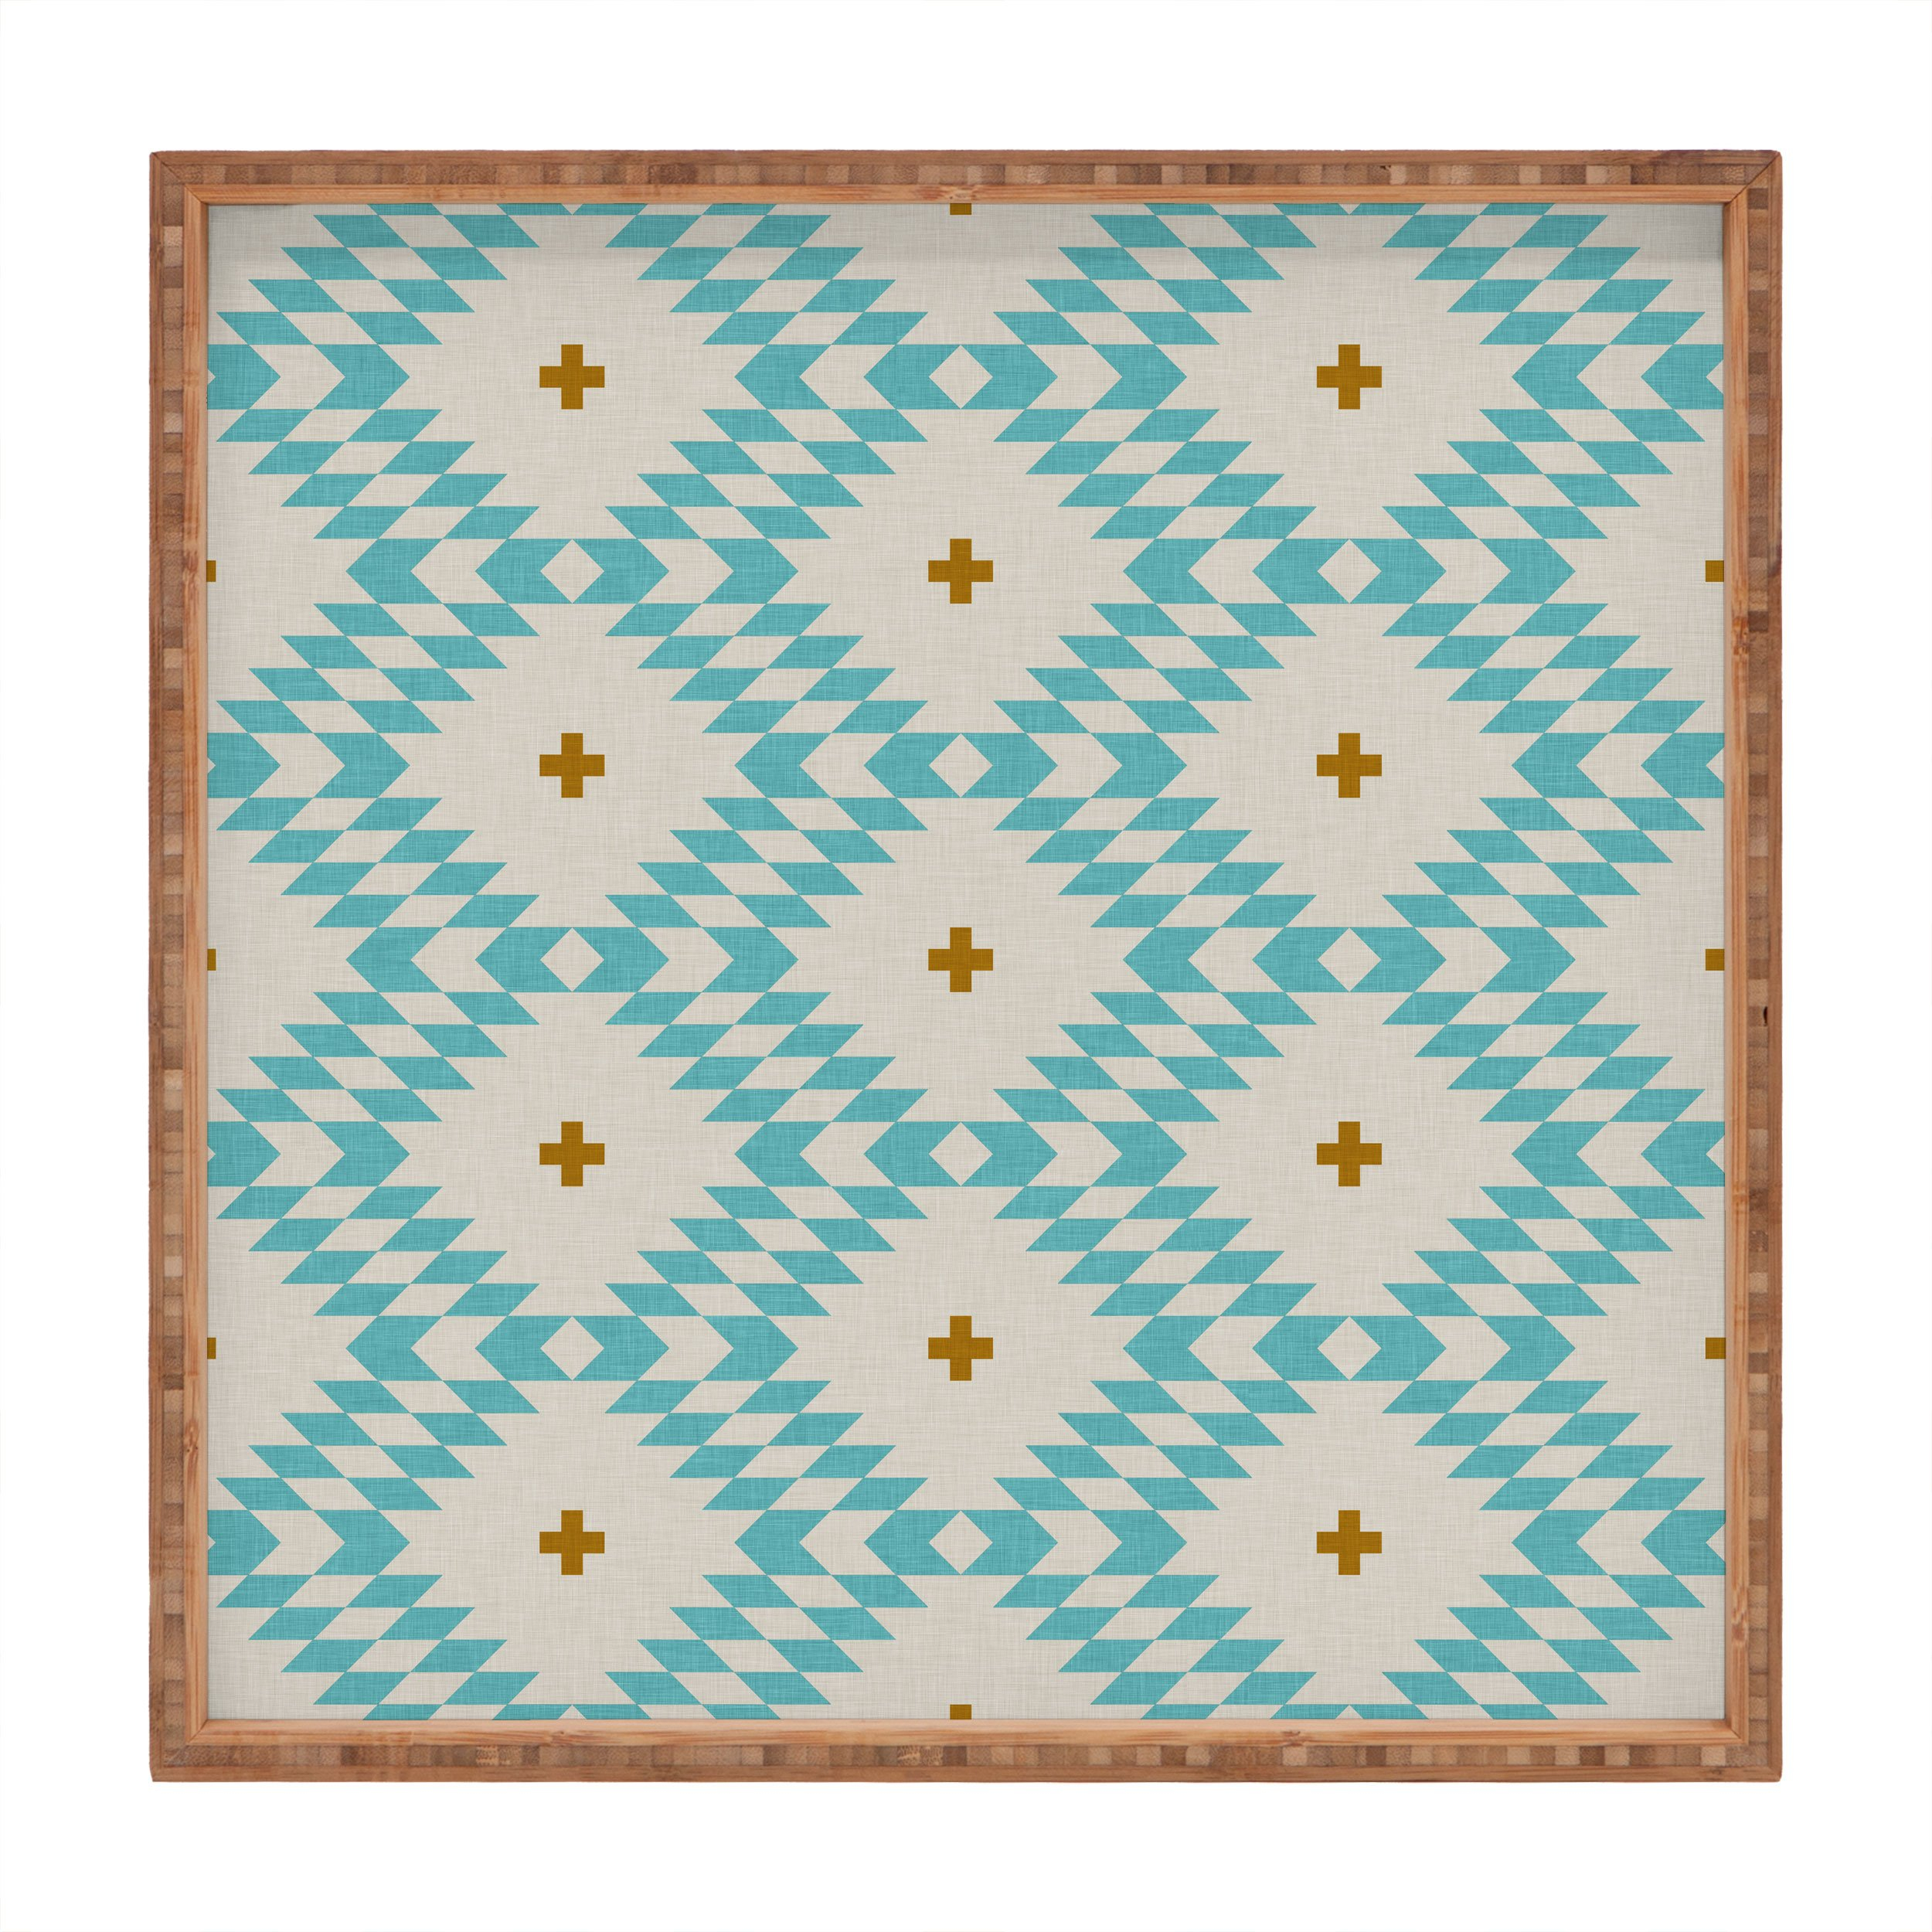 Image of Holli Zollinger Native Natural Plus Turquoise Square Tray